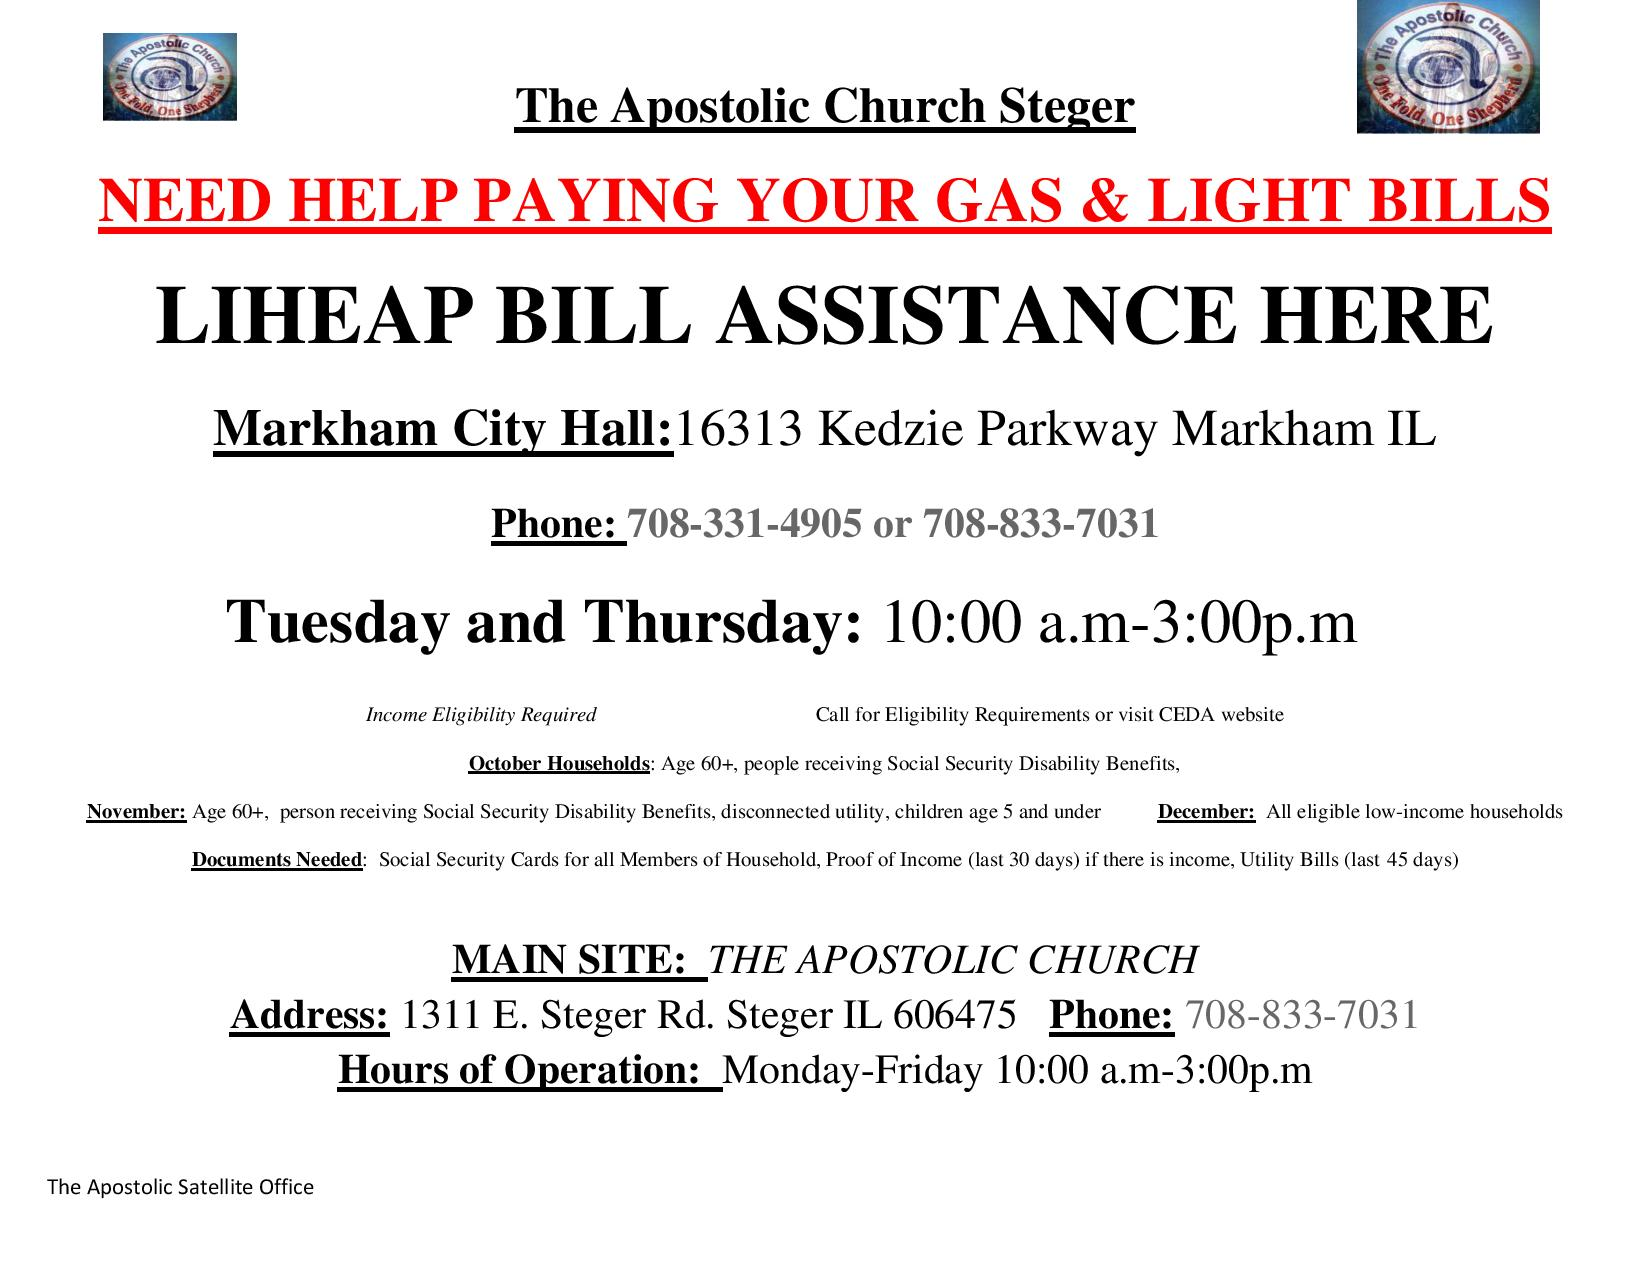 Apostolic Church LIHEAP Flyer